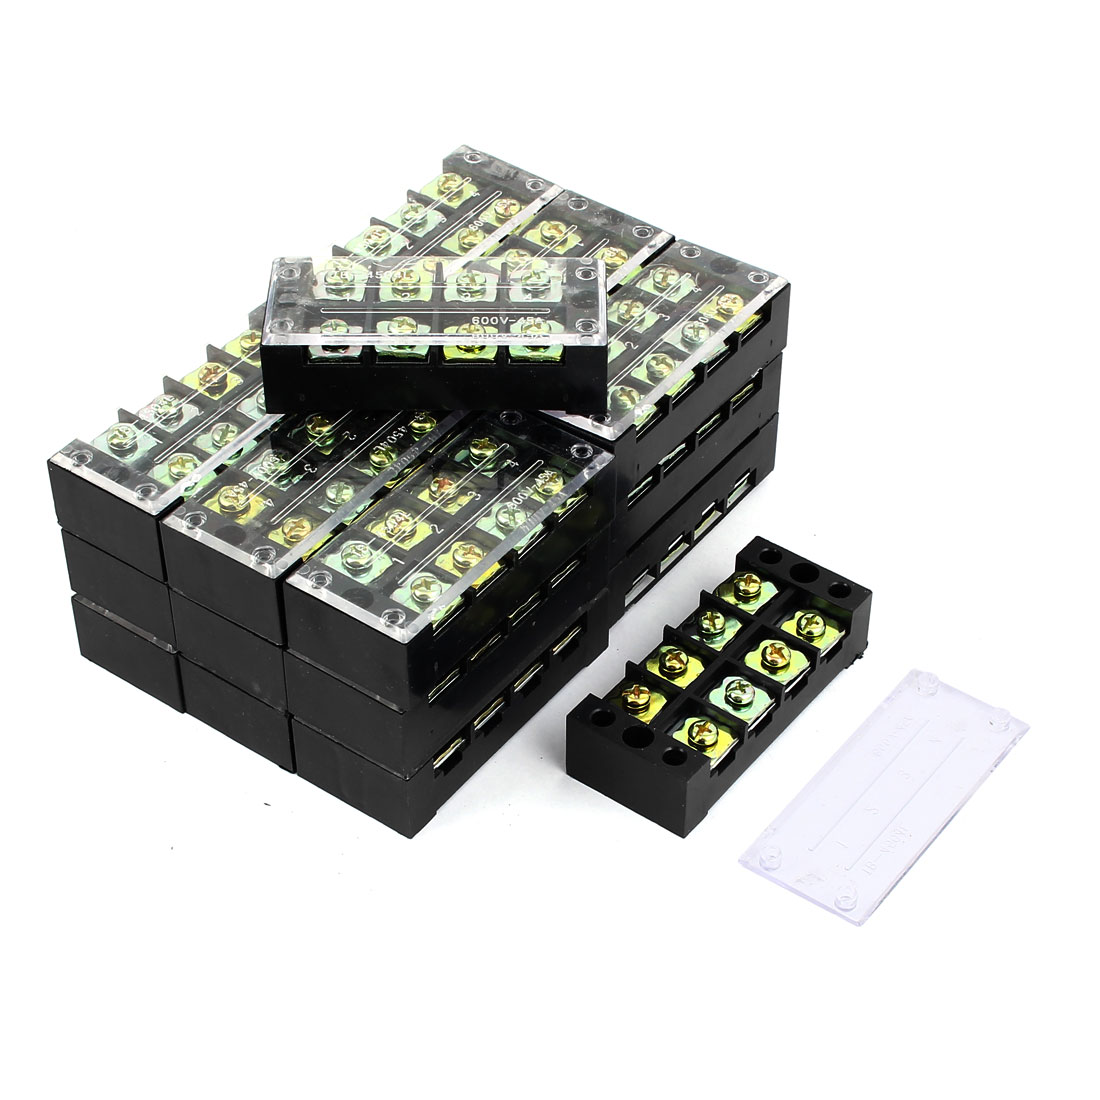 20 Pcs 600V 45A Double Row 4 Position Screw Terminal Blocks TB4504